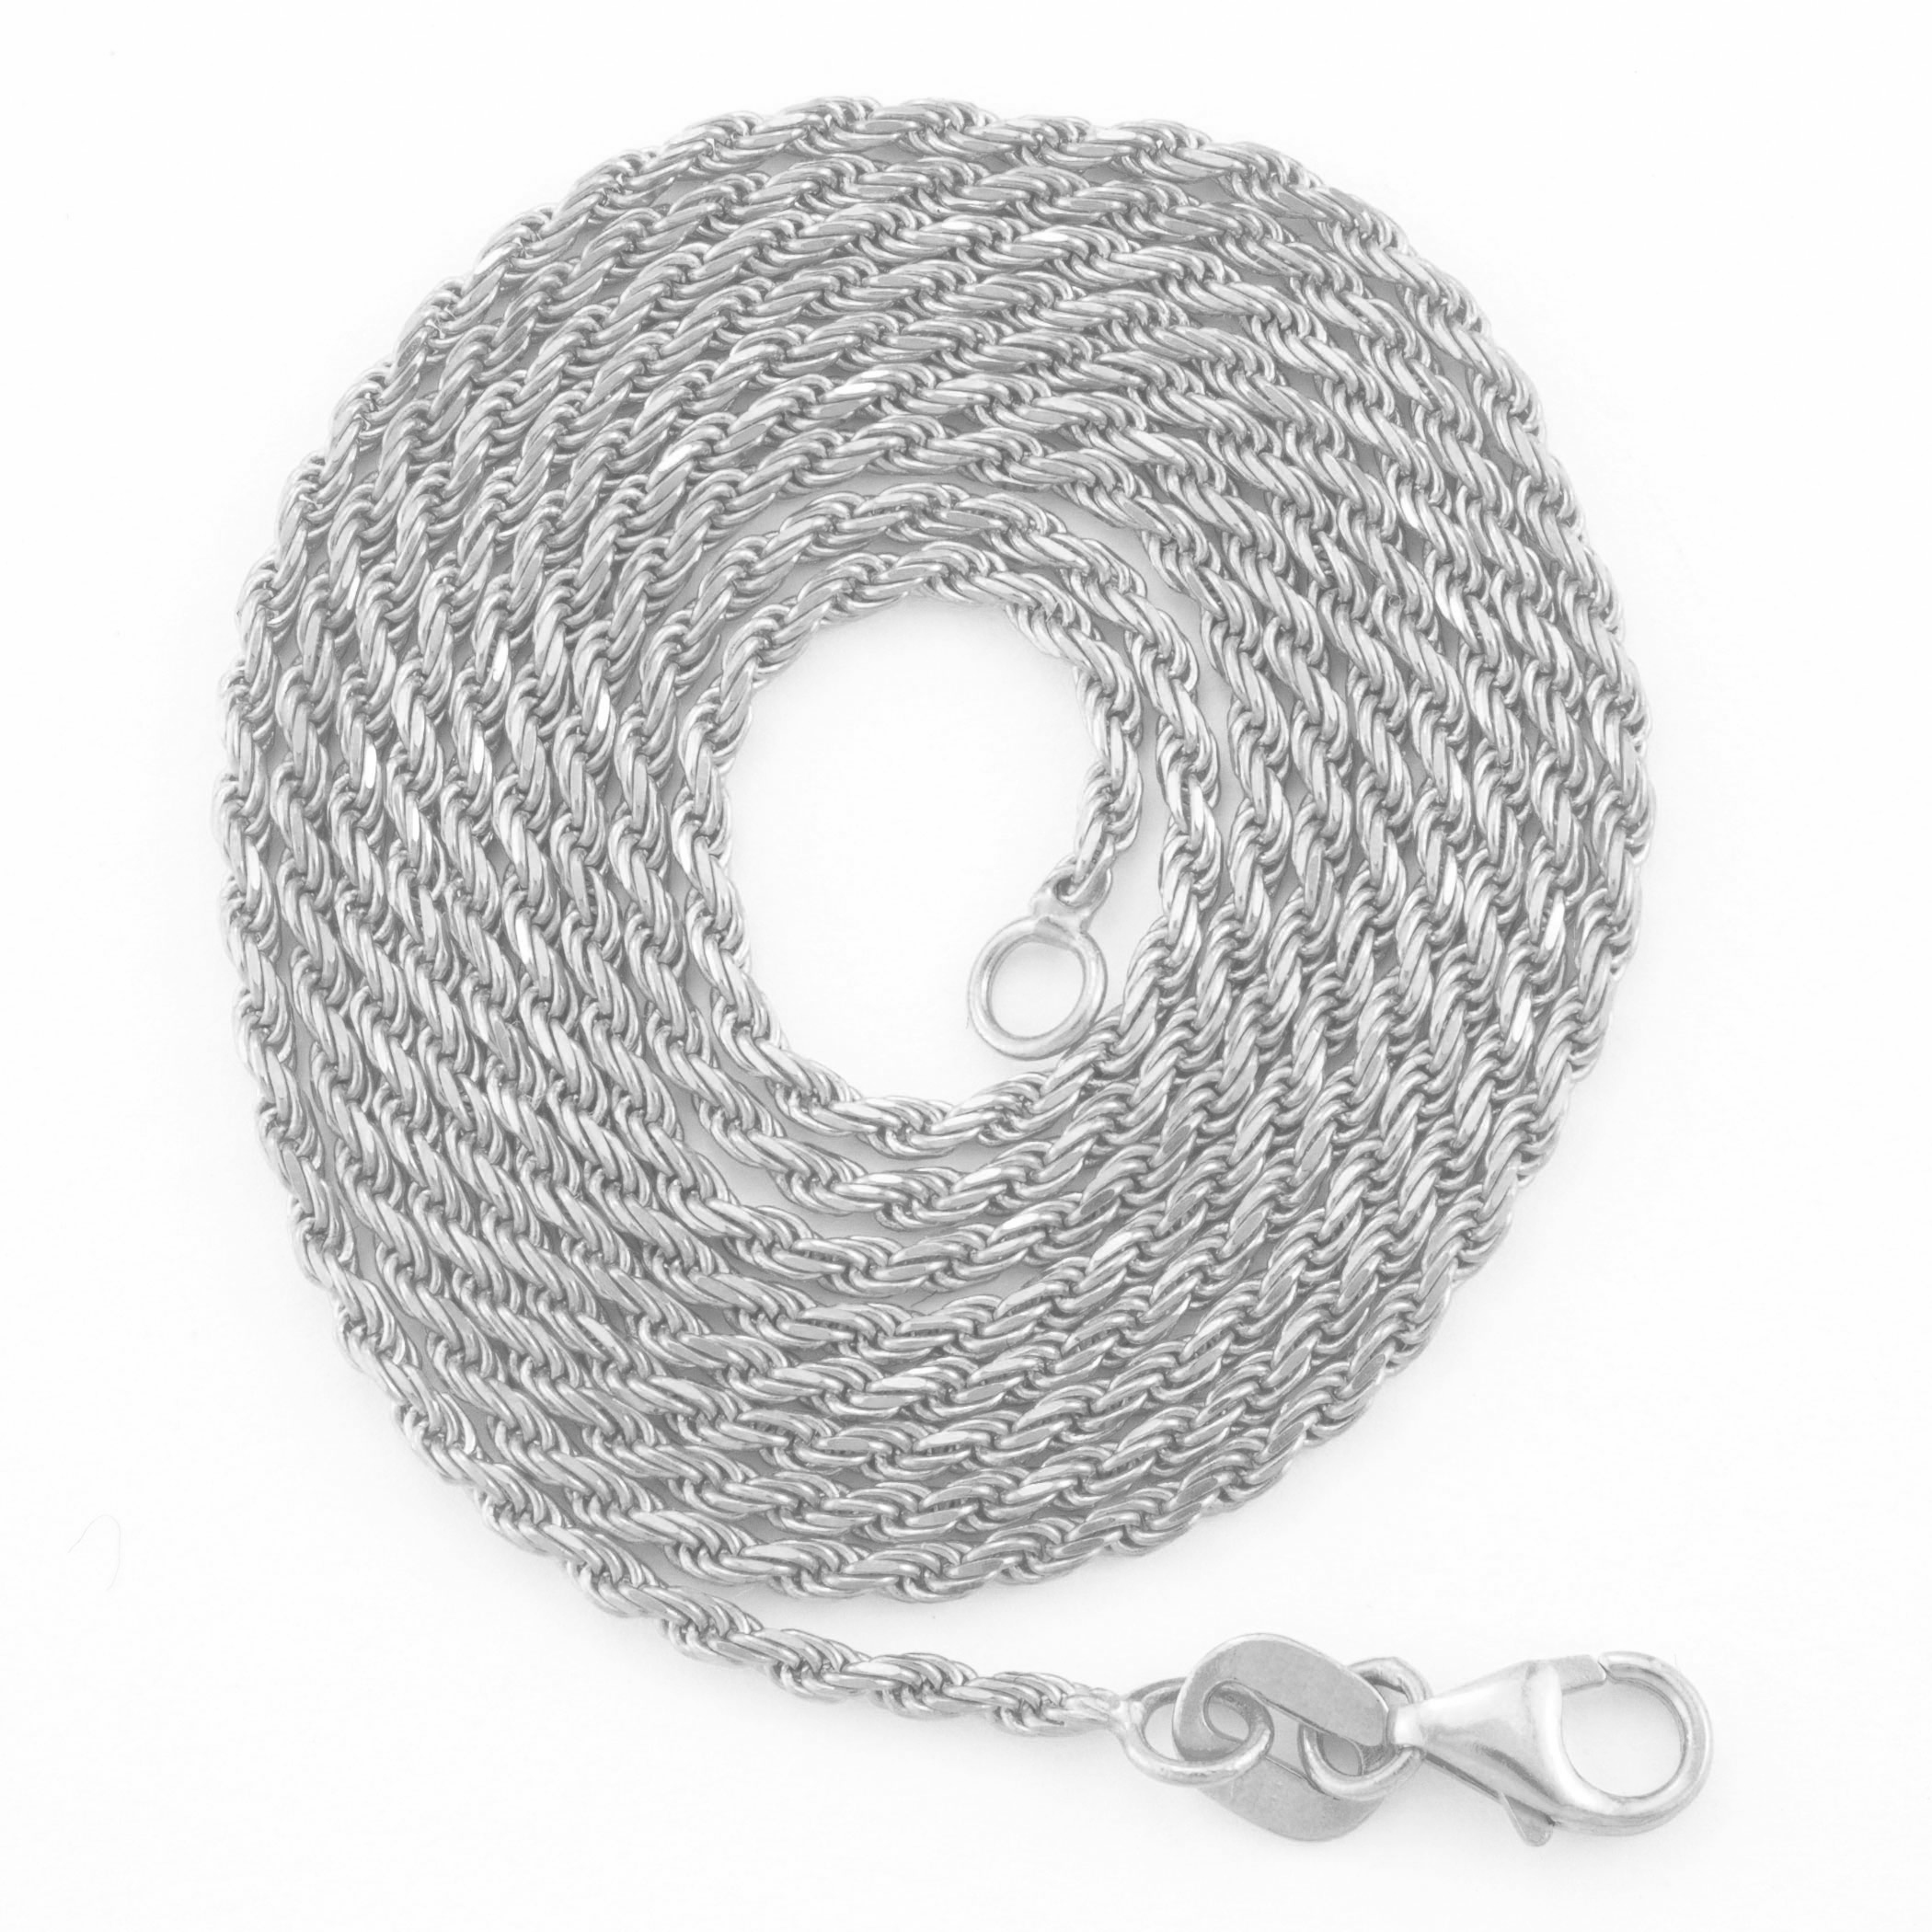 14K-White-Gold-Italian-2-5mm-Diamond-Cut-Rope-Chain-Pendant-Necklace-14-034-30-034 thumbnail 22